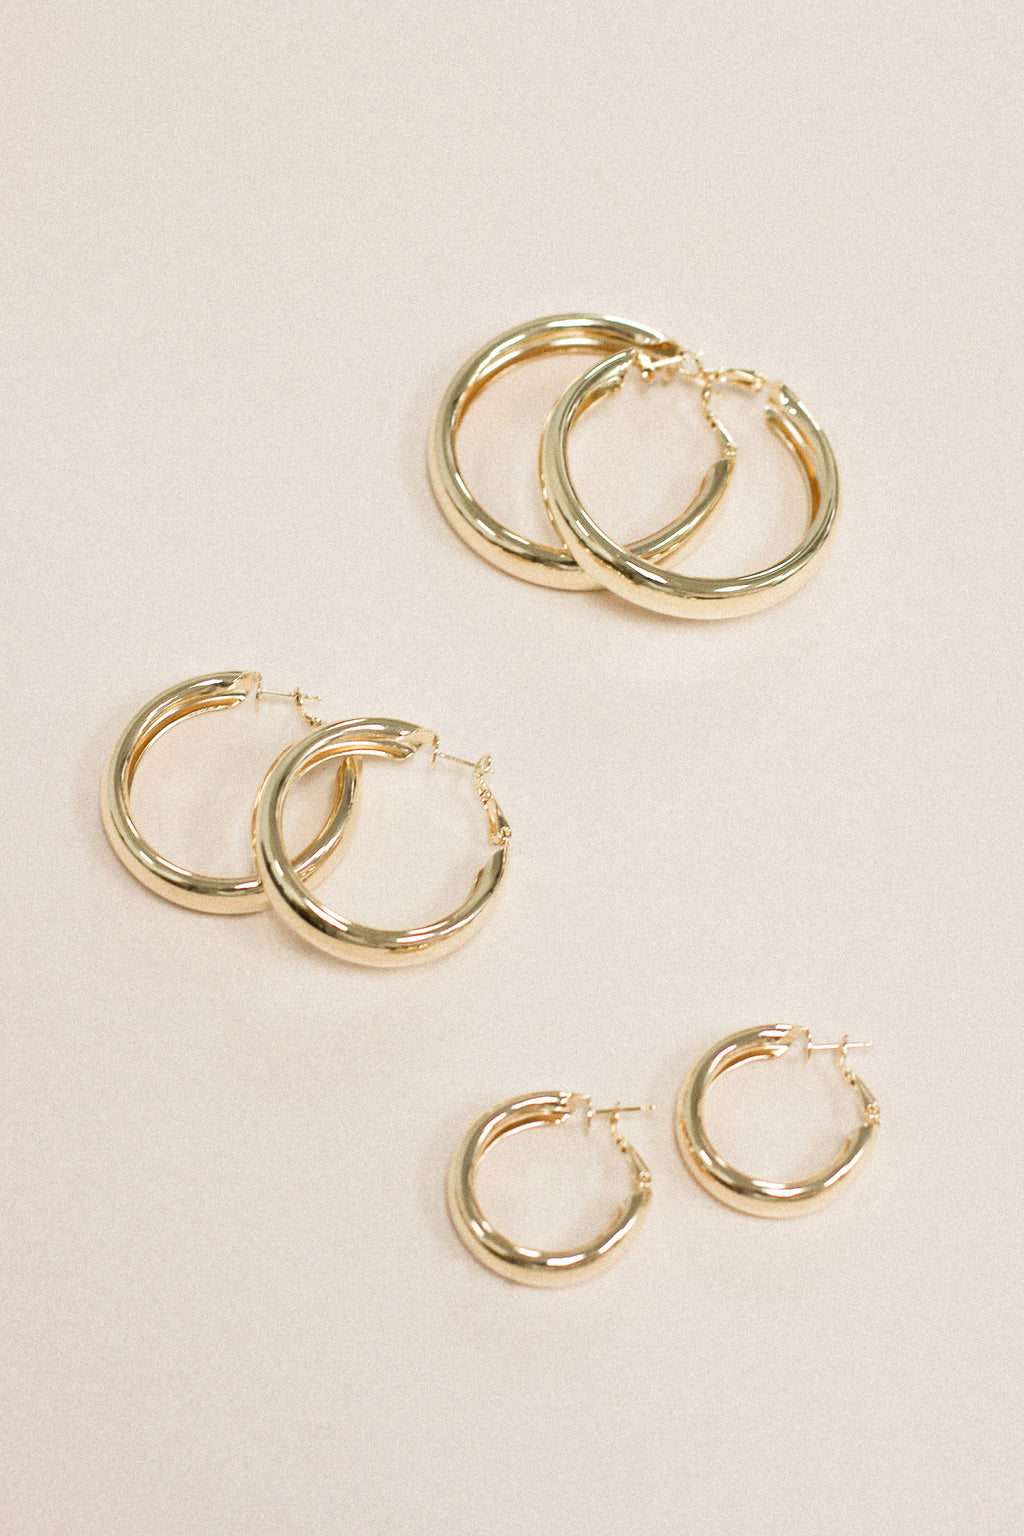 Slide Away Hoop Earrings